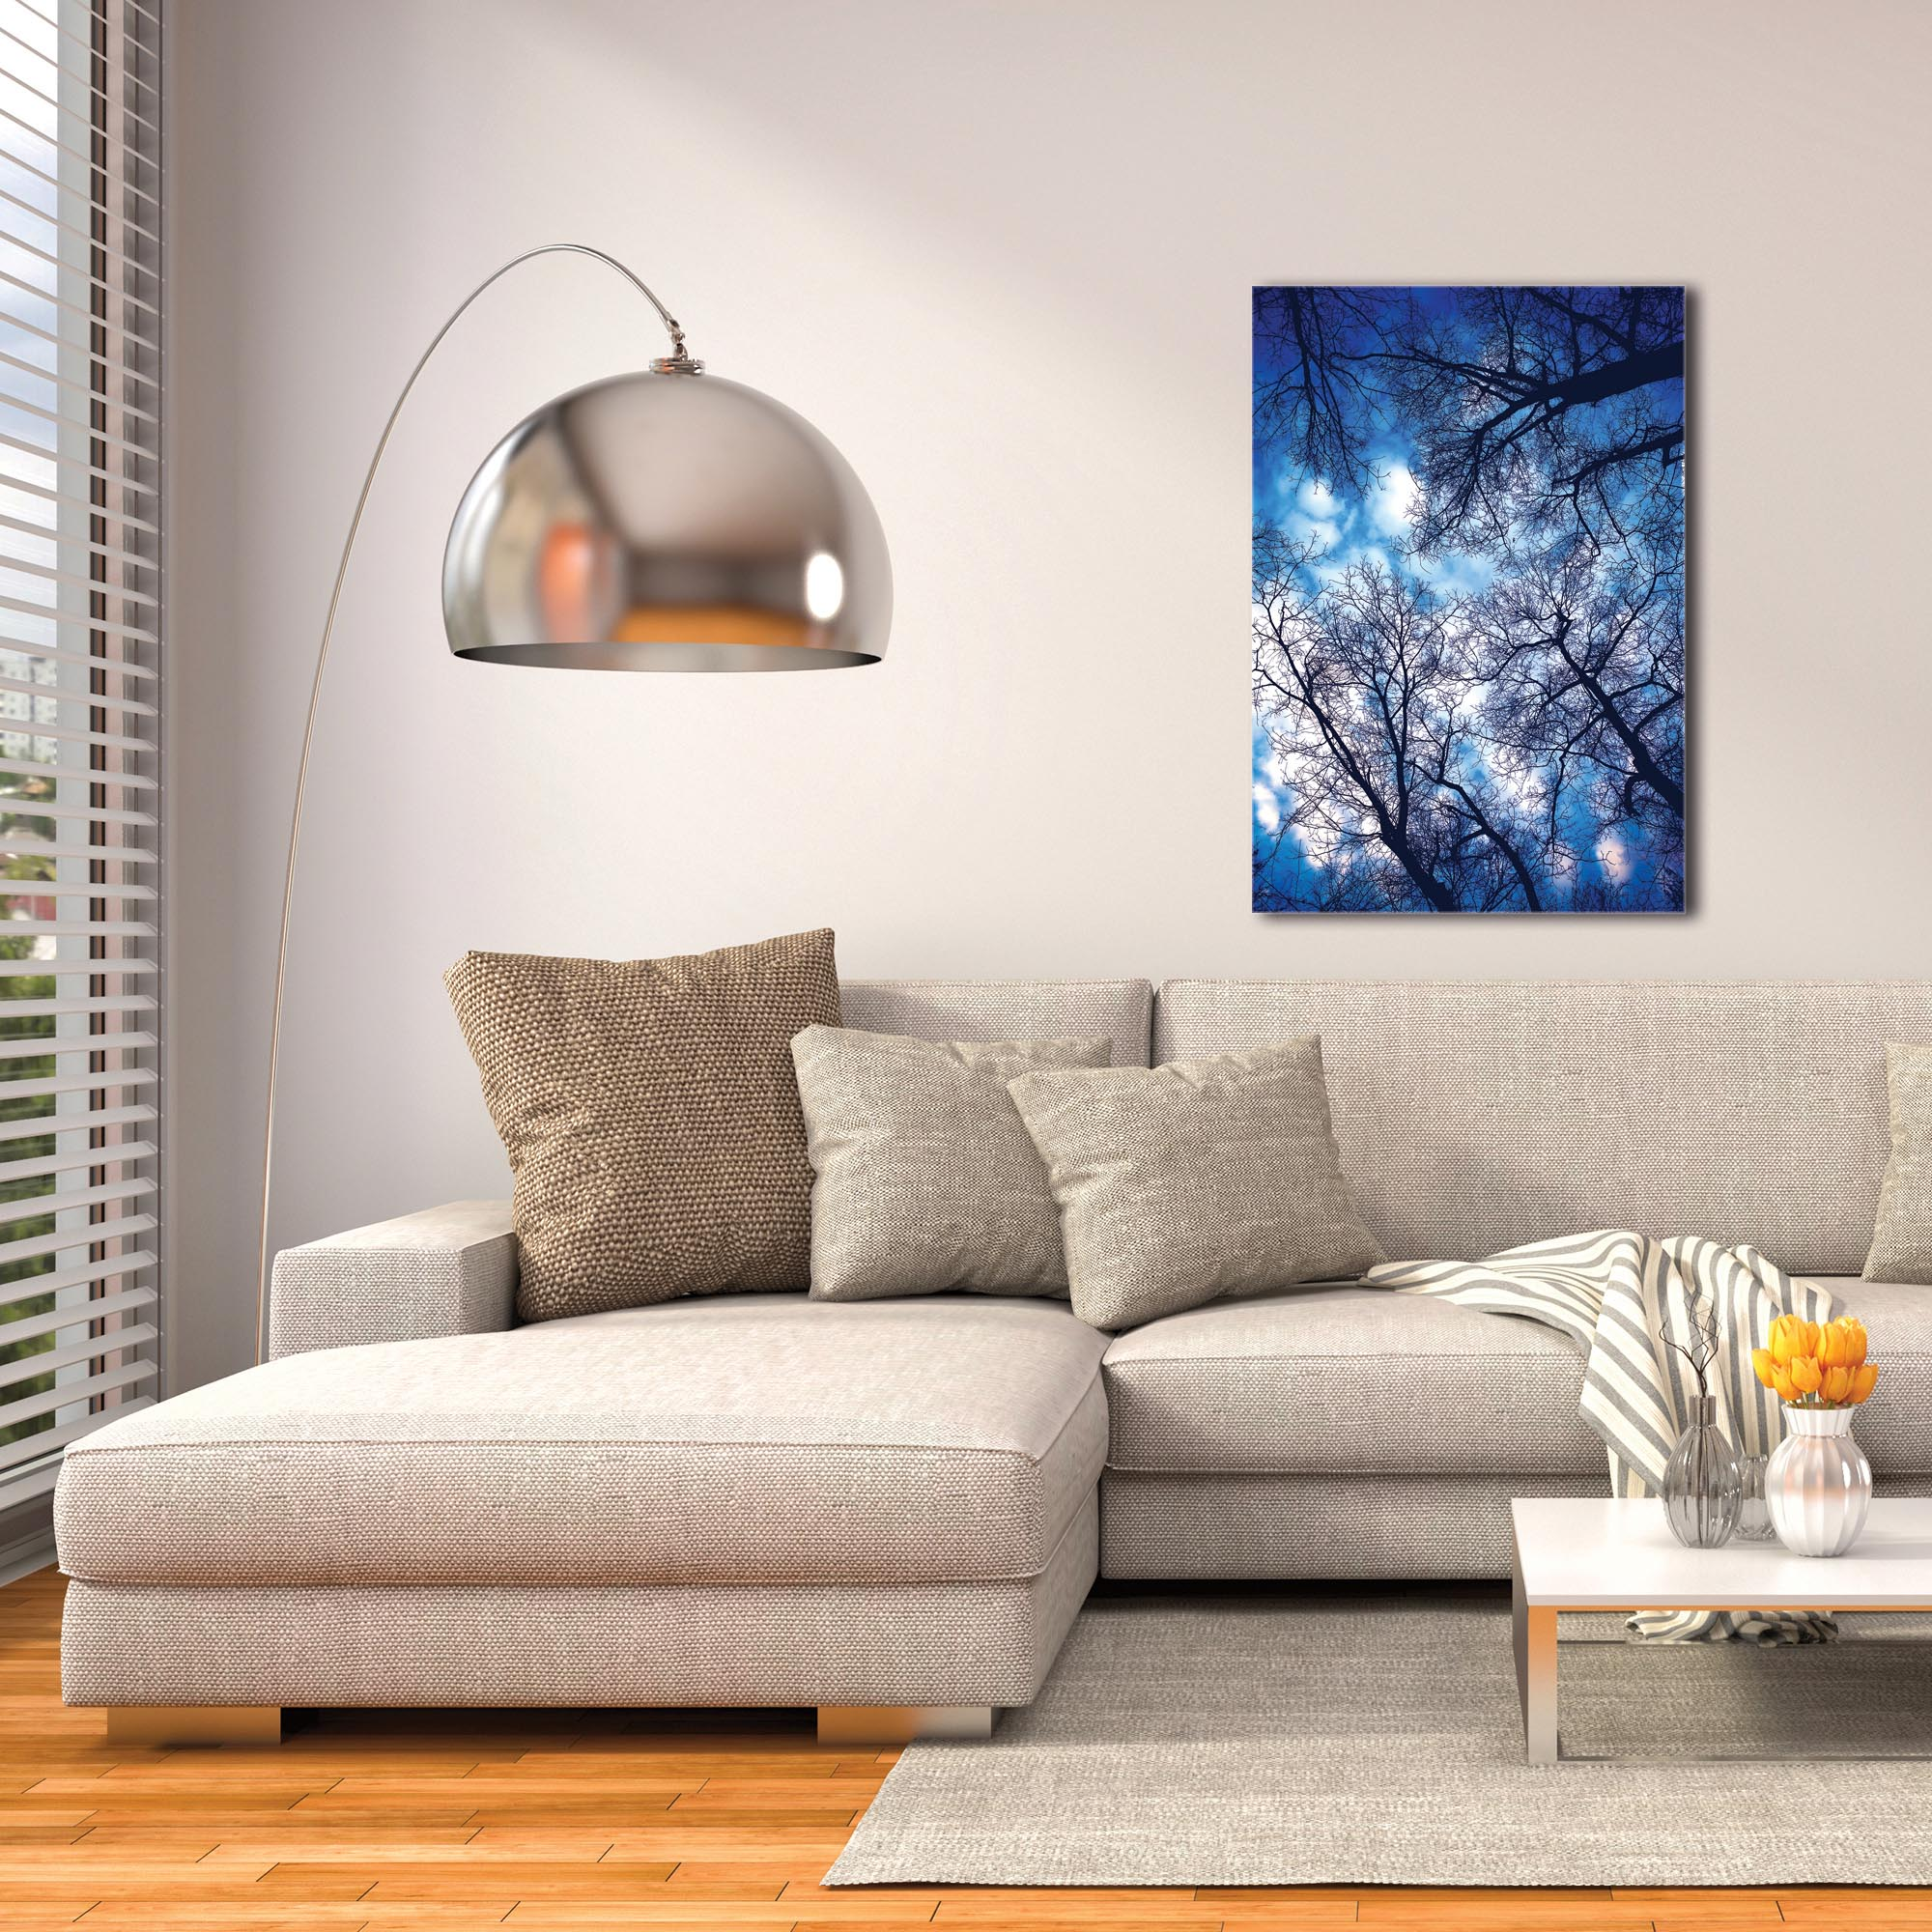 Landscape Photography 'Sky Vains' - Winter Scene Art on Metal or Plexiglass - Image 3